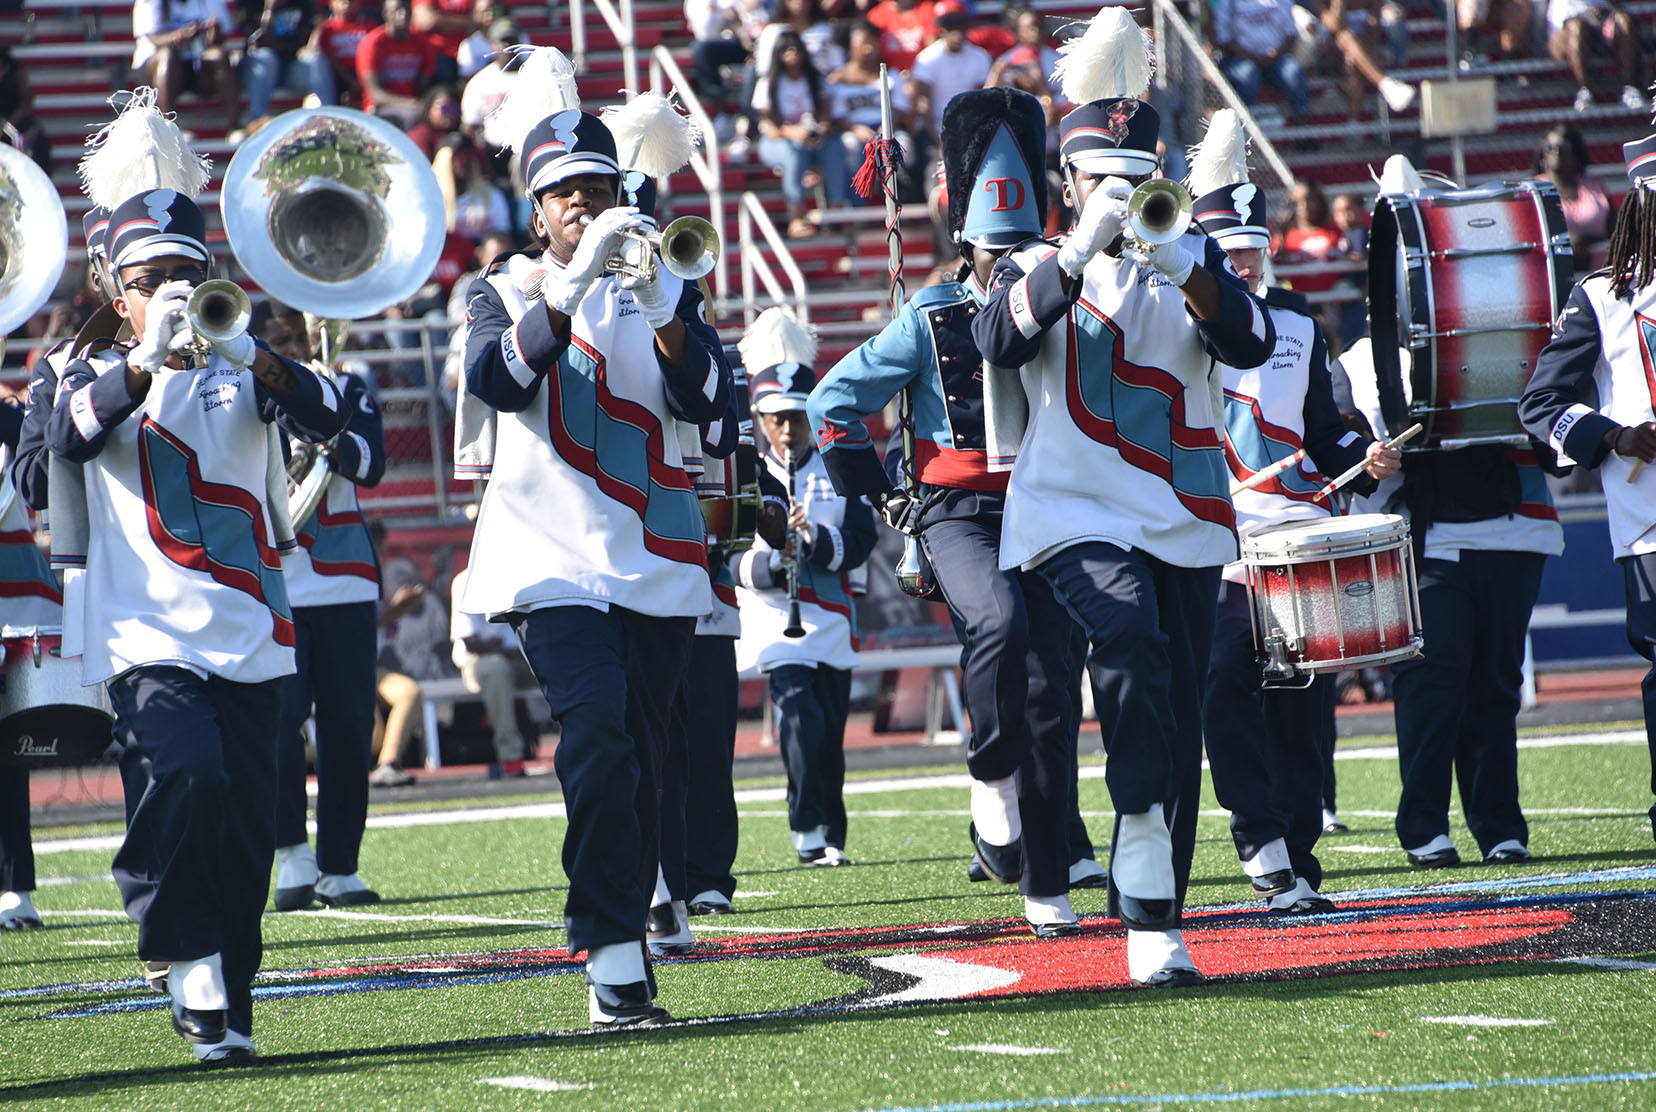 Former Approaching Storm members Sidney Sessoms and Vincent Adkins have been named as the new band director and assistant band director, respectively,  for Del States' premier marching band.